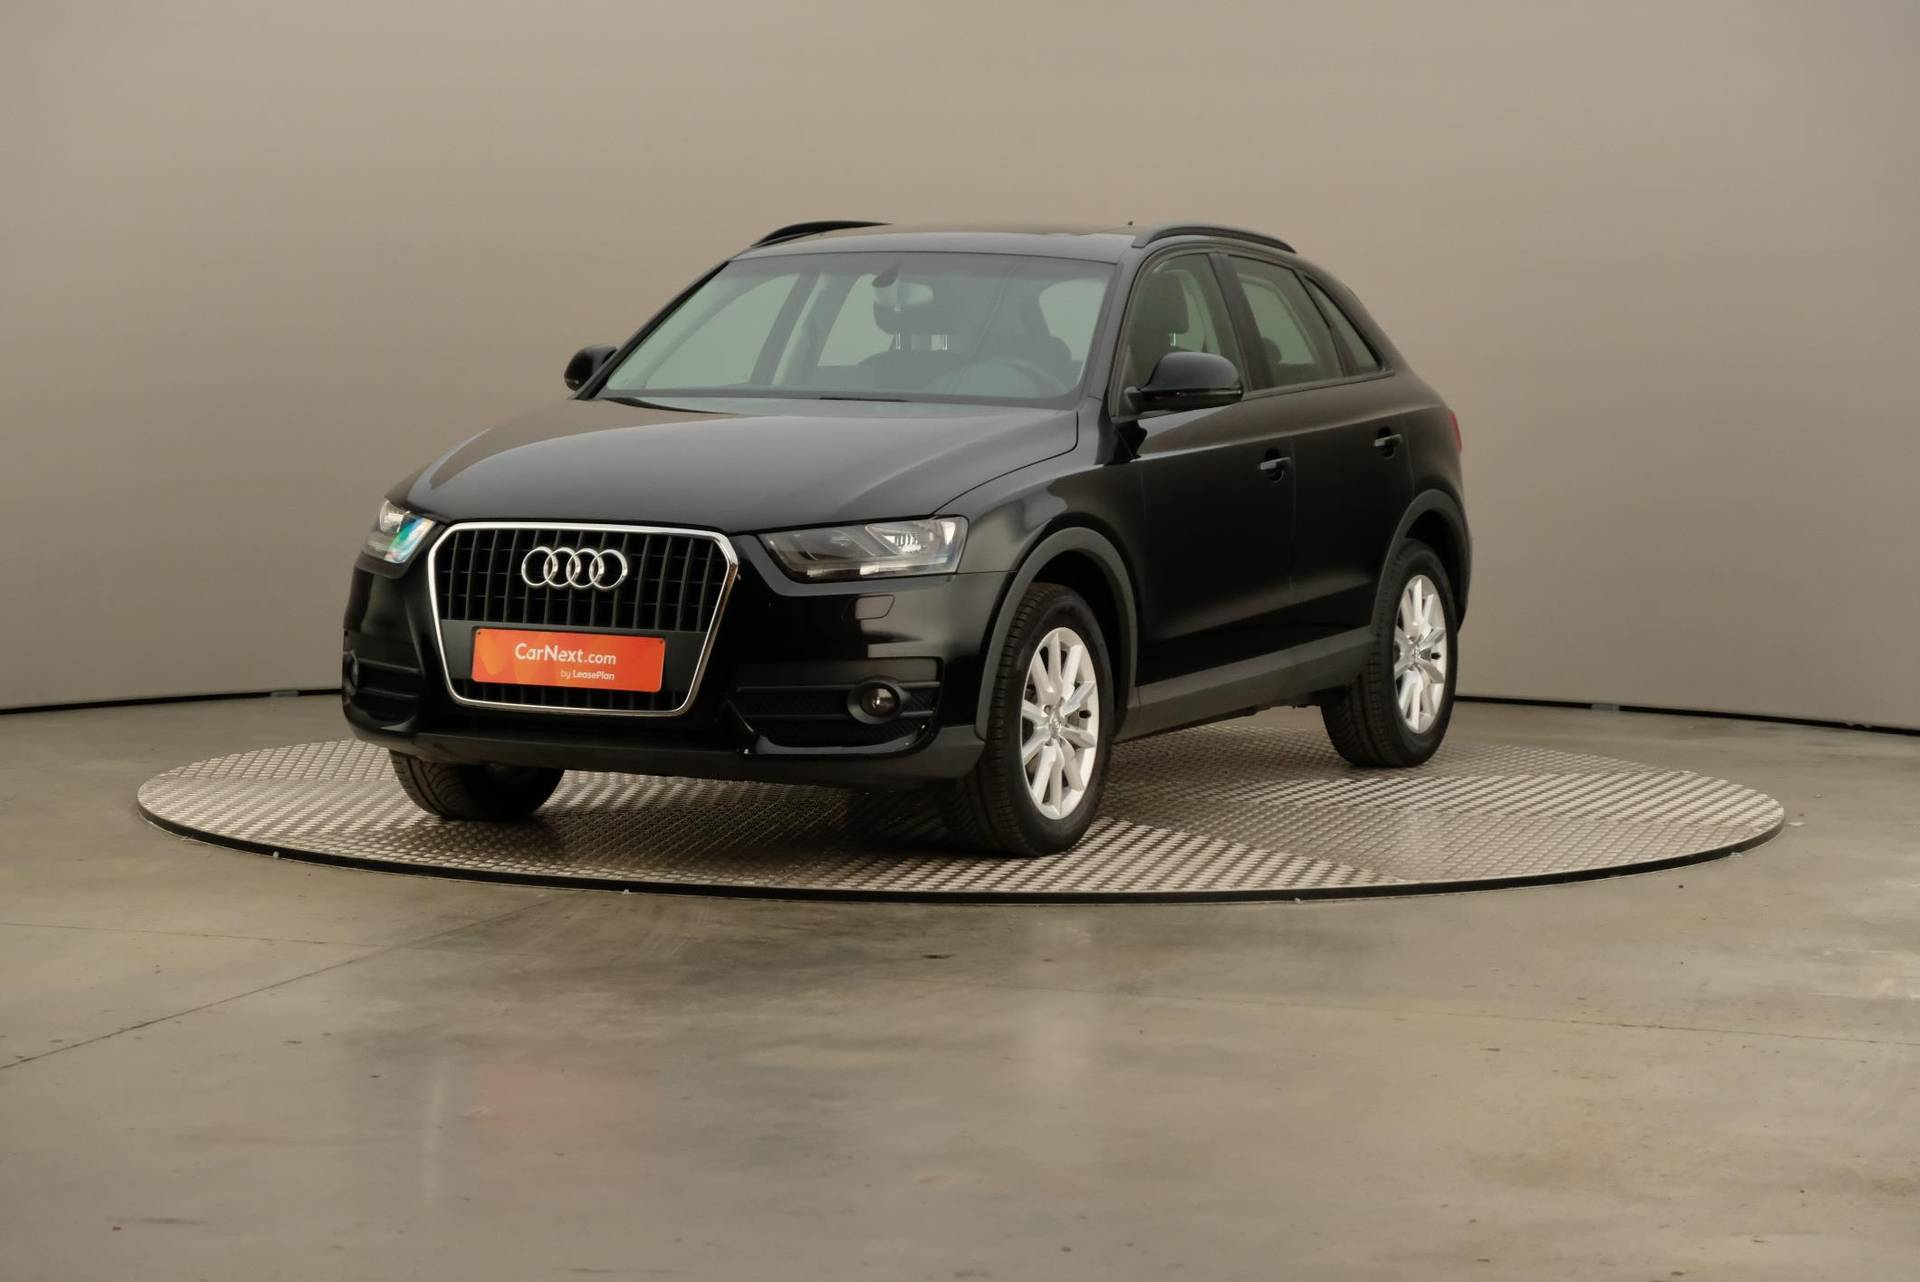 Audi Q3 2.0 TDI Adventure Plus S&S PANO MP3 BT GPS, 360-image34